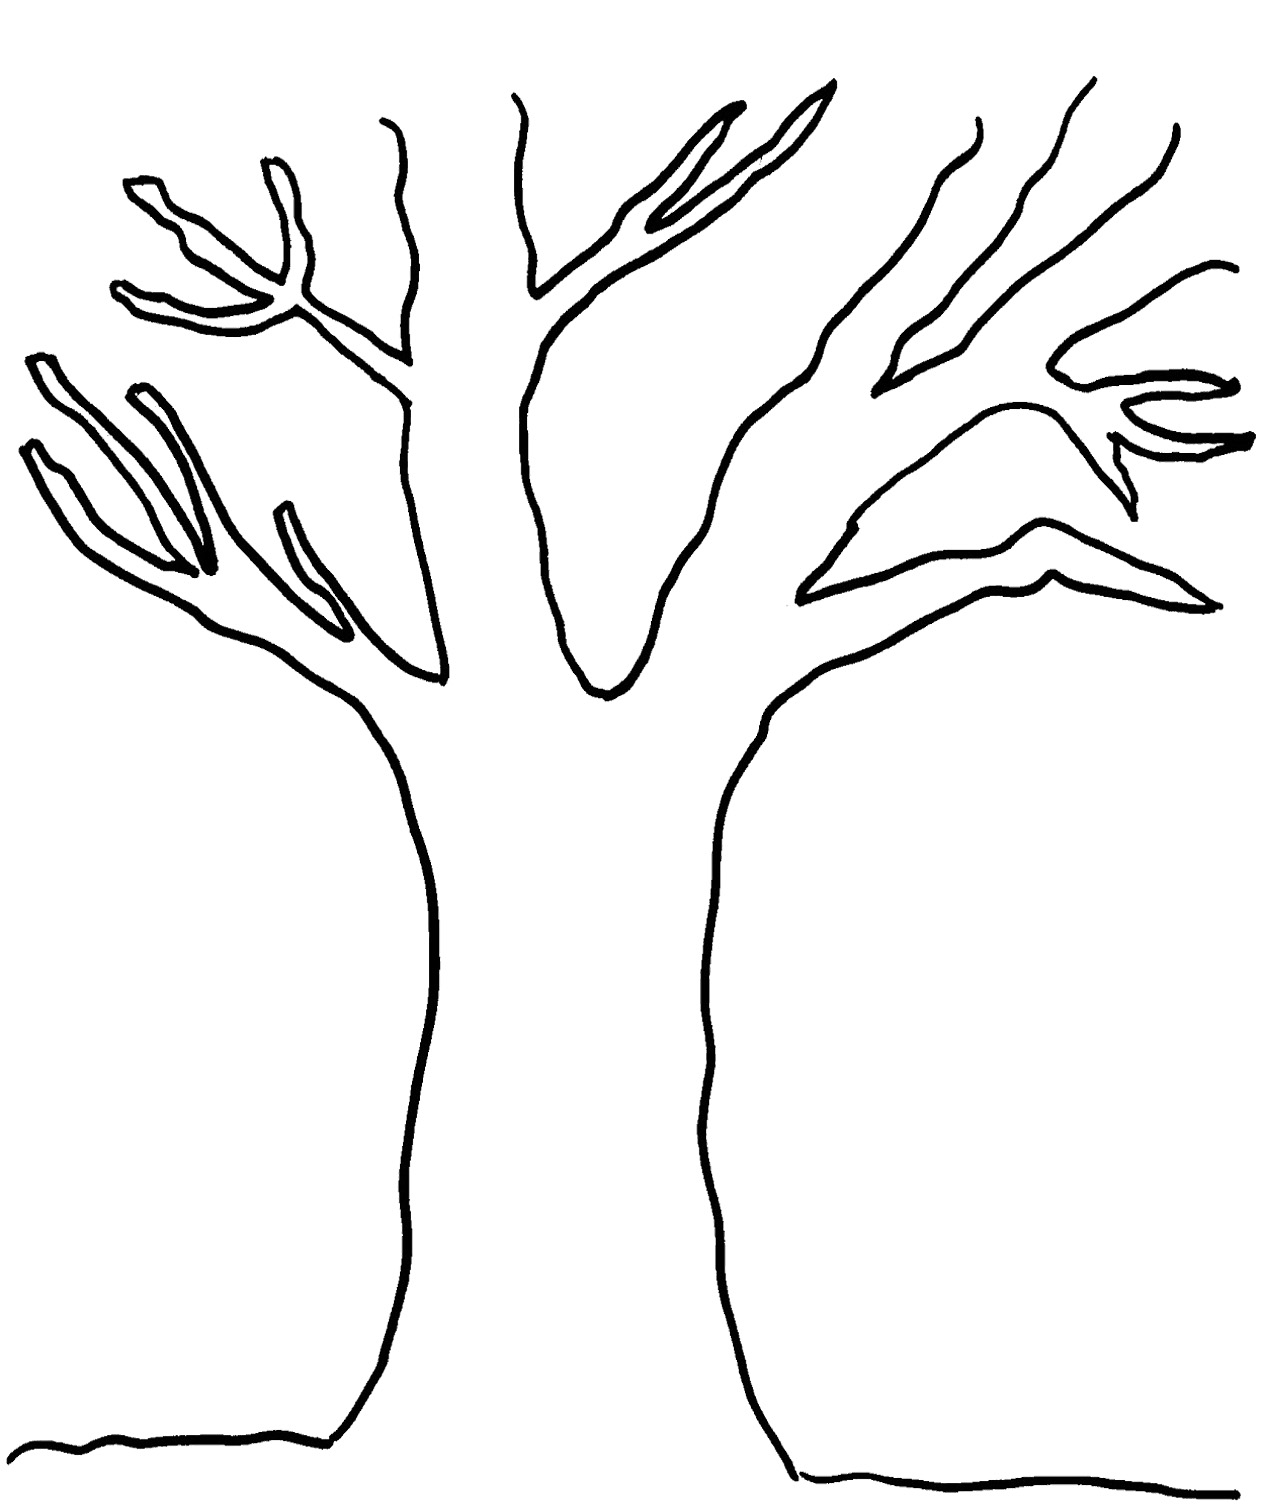 4 Images of Tree Outline Printable